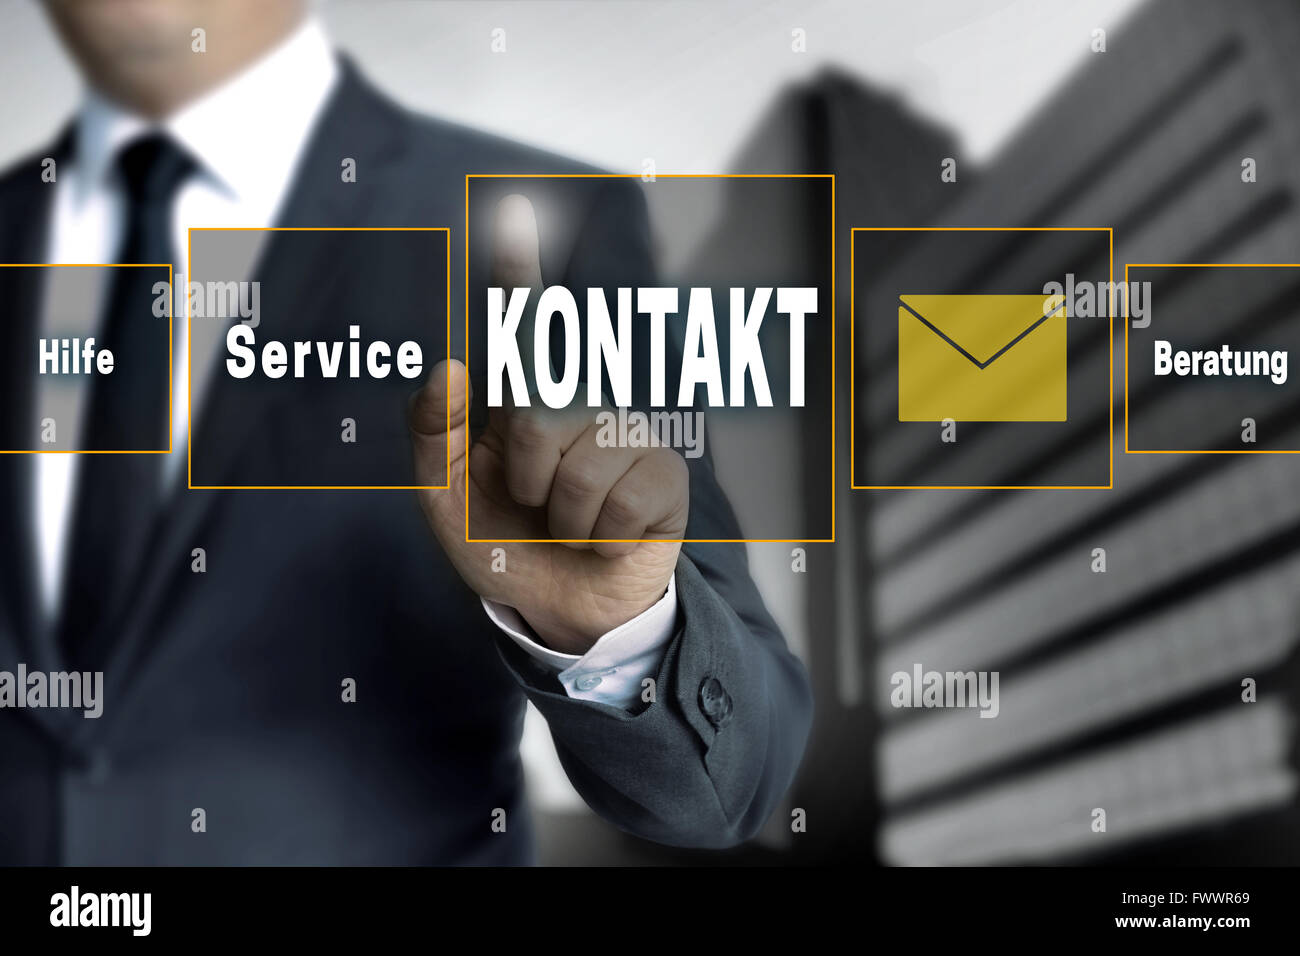 Kontakt, Hilfe, Beratung, service (in german language contact, help, consulting, service) touchscreen is operated - Stock Image